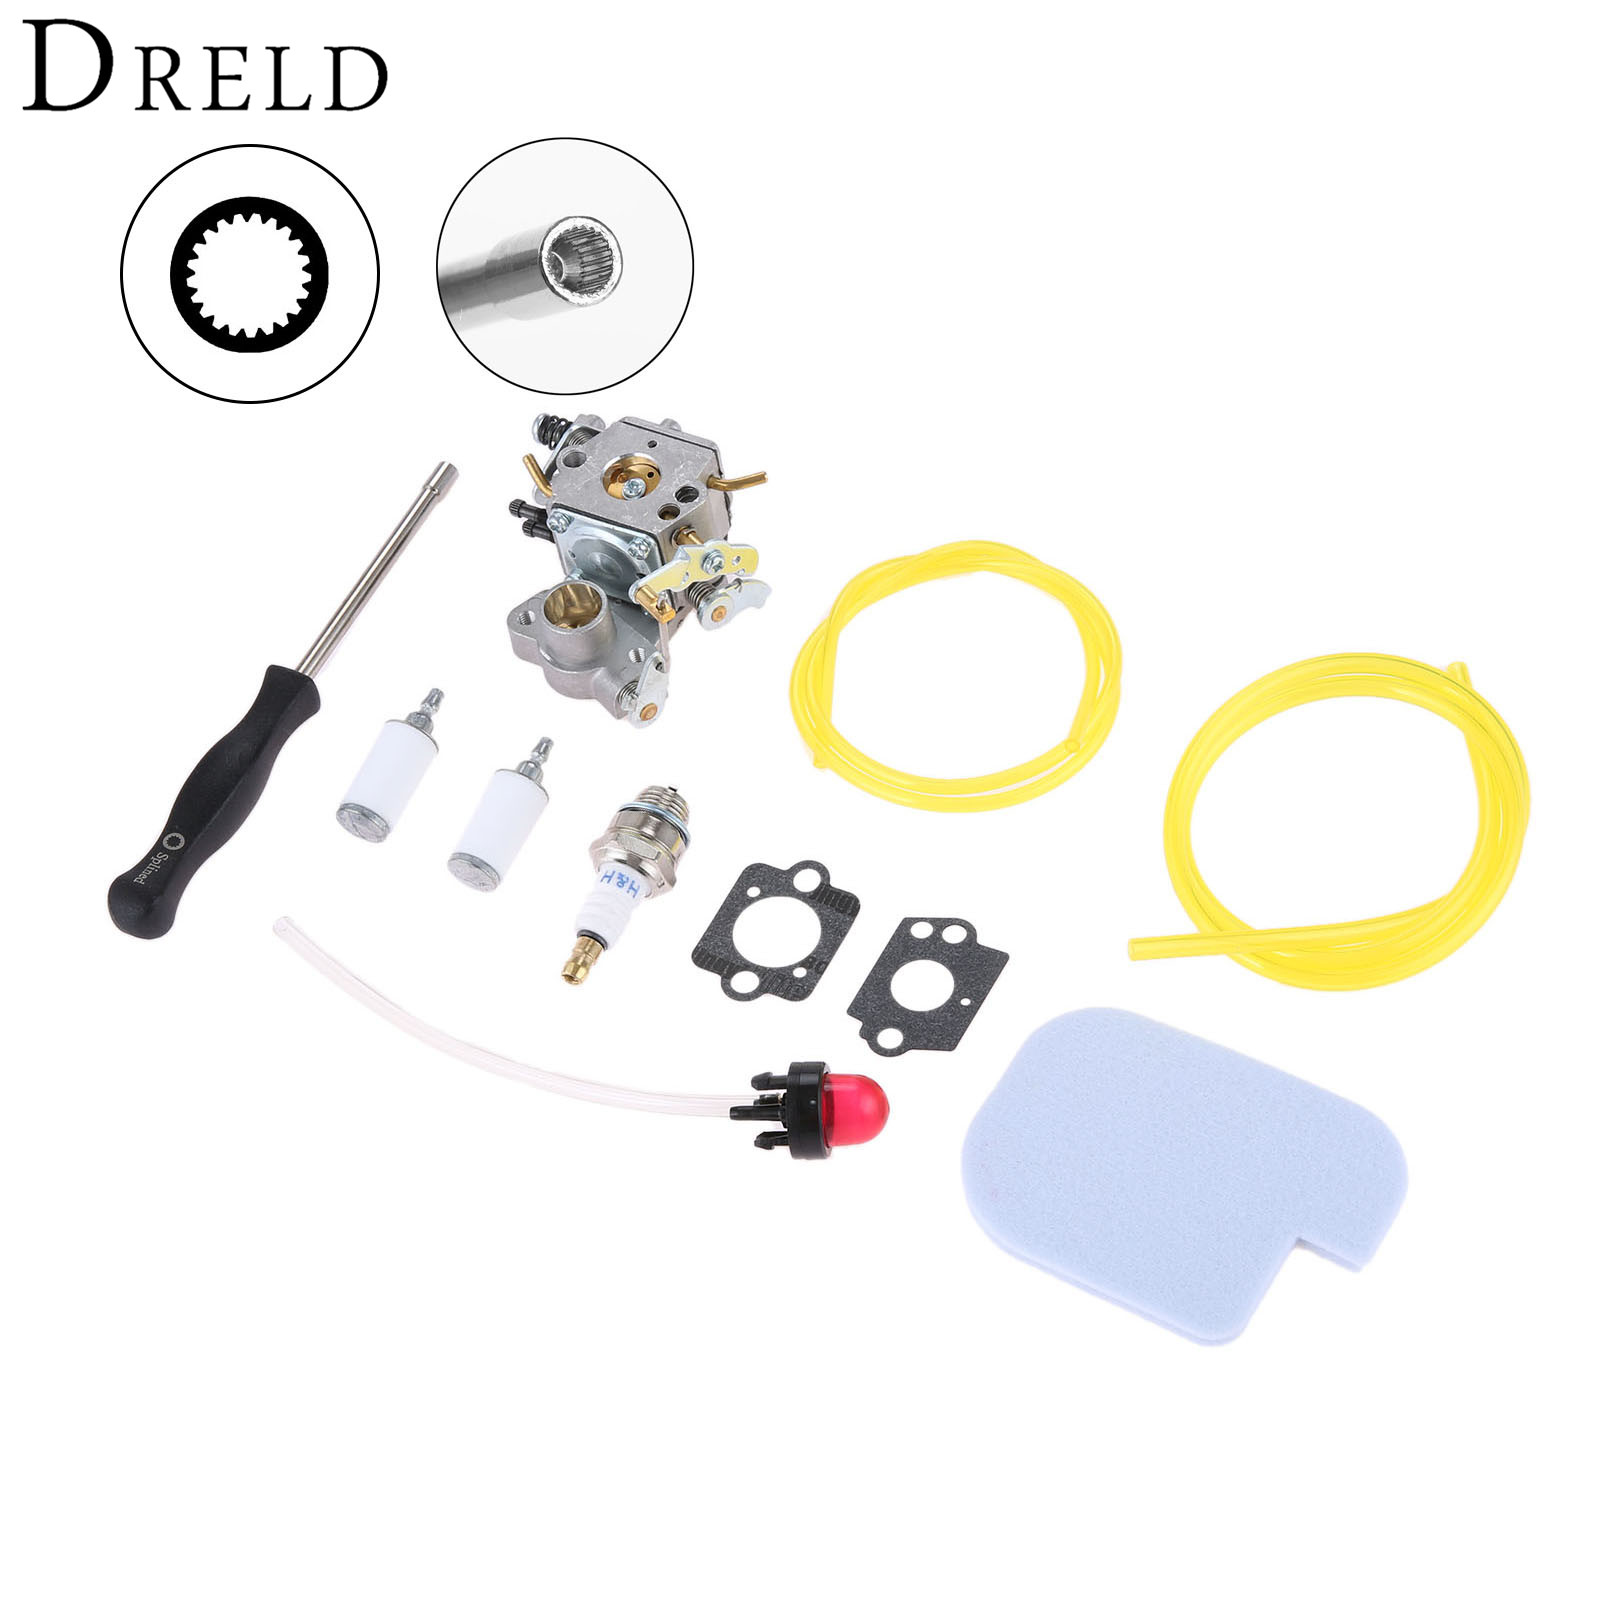 DRELD Carburetor Carb Gasket Fuel Filter Primer Bulb Air Filter Spark Plug Spined Tool For Poulan Craftsman Chainsaw C1M W26 in Lawn Mower from Tools